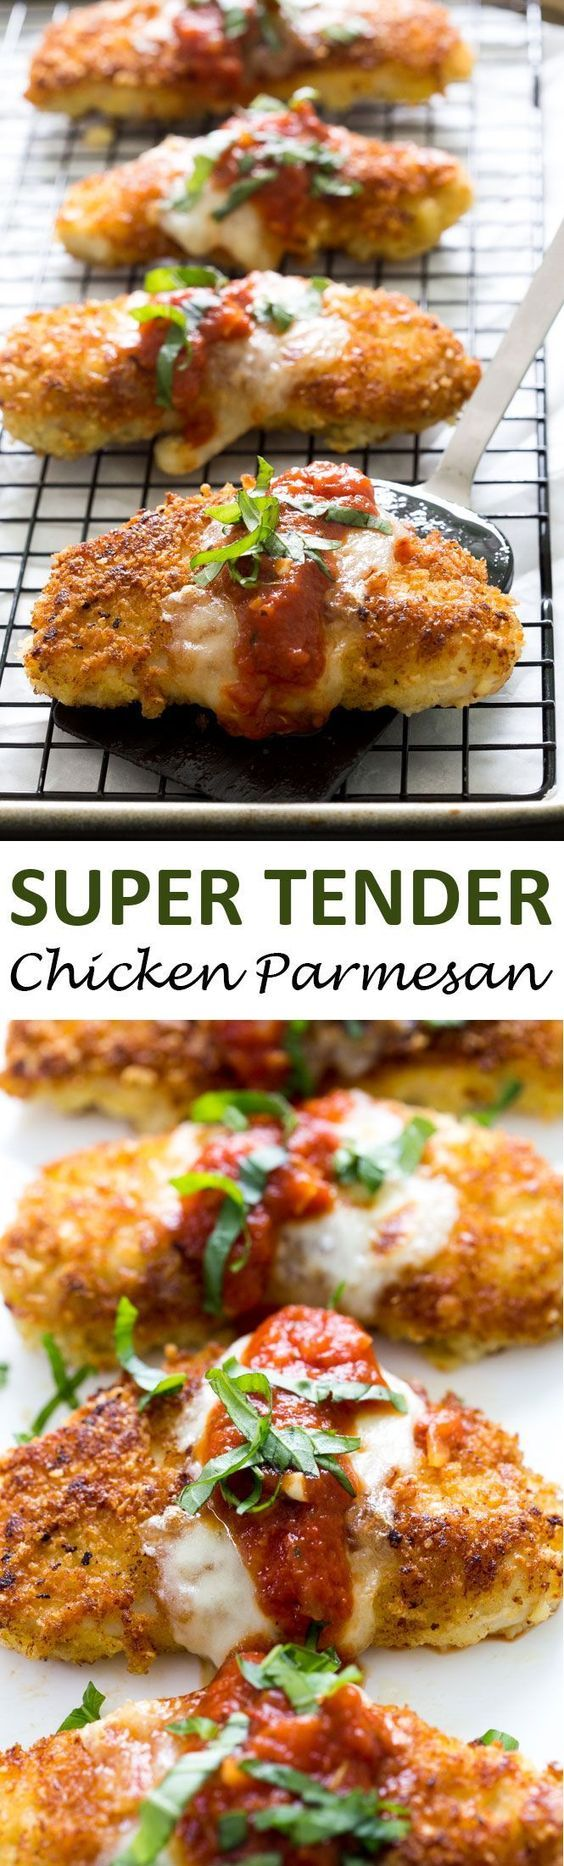 The BEST Chicken Parmesan. A quick and easy 30 minute weeknight meal everyone will love!   chefsavvy.com